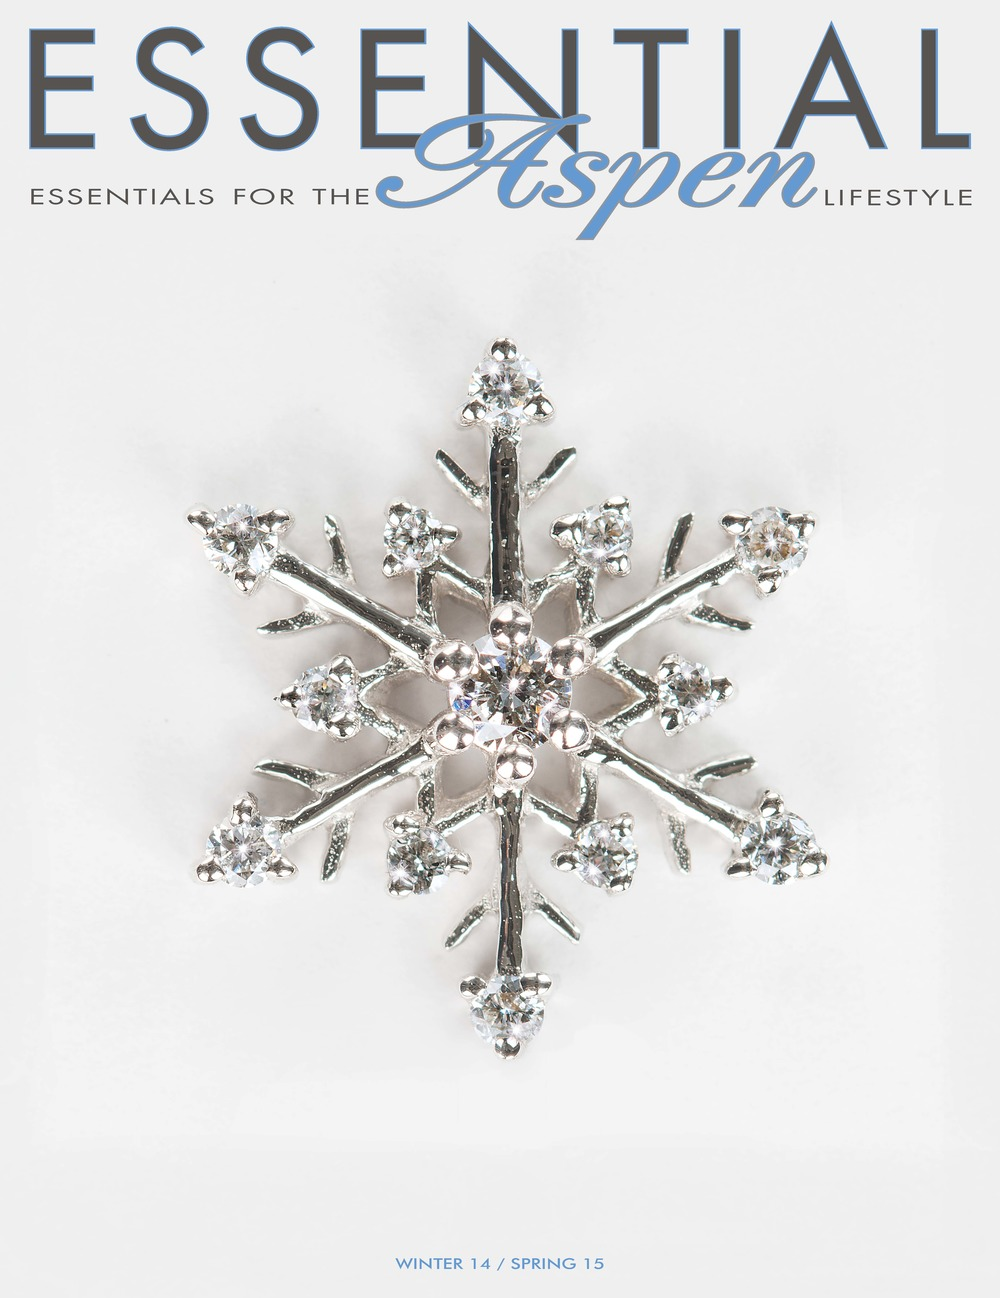 Essential Aspen Winter 2014